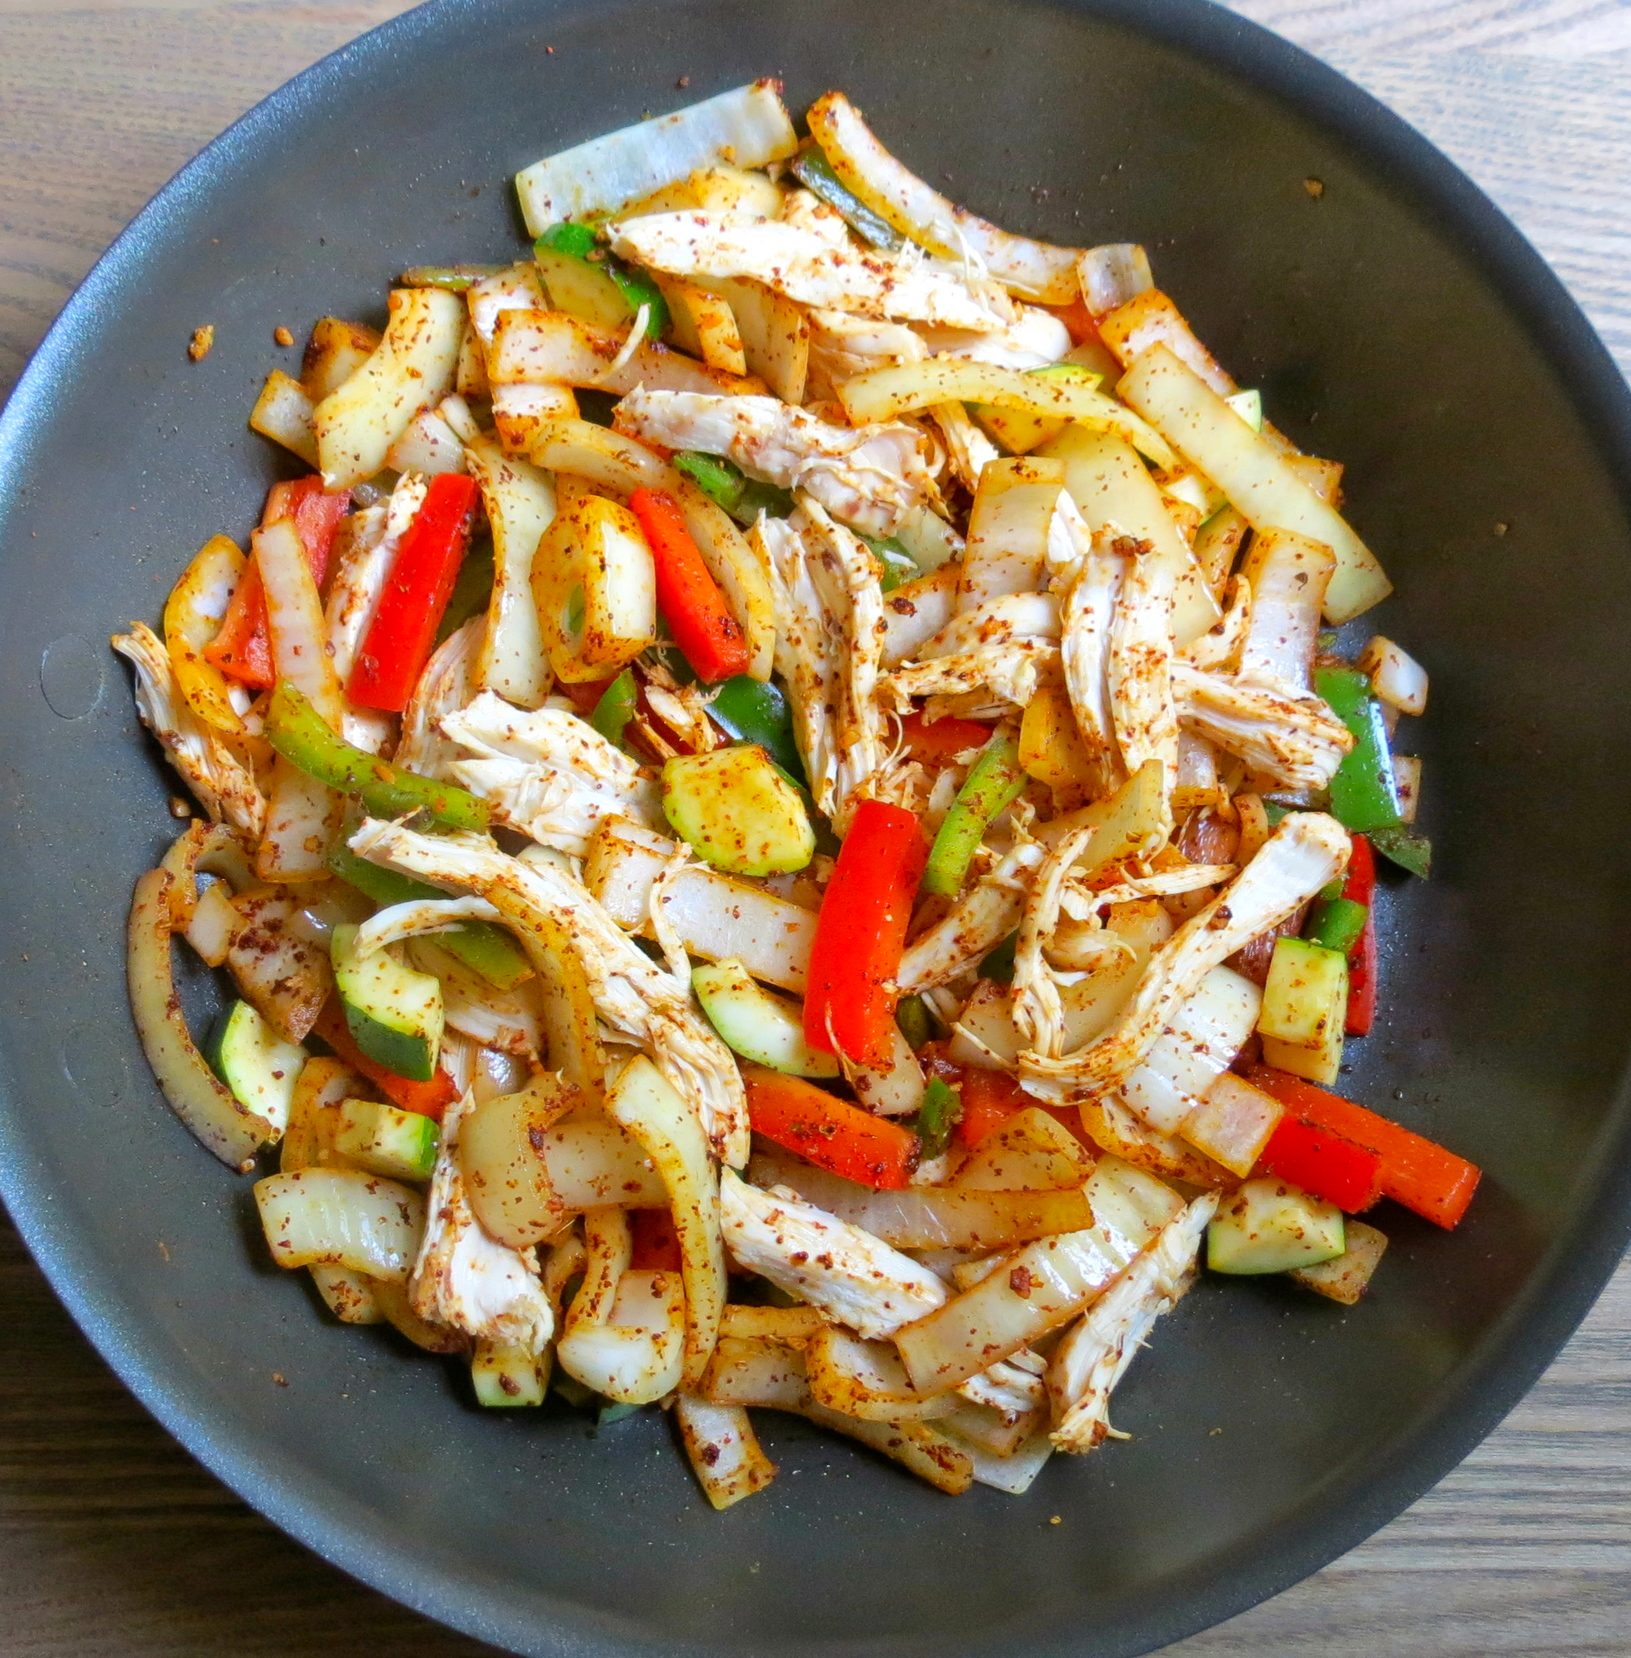 Sauteed vegetables and chicken.